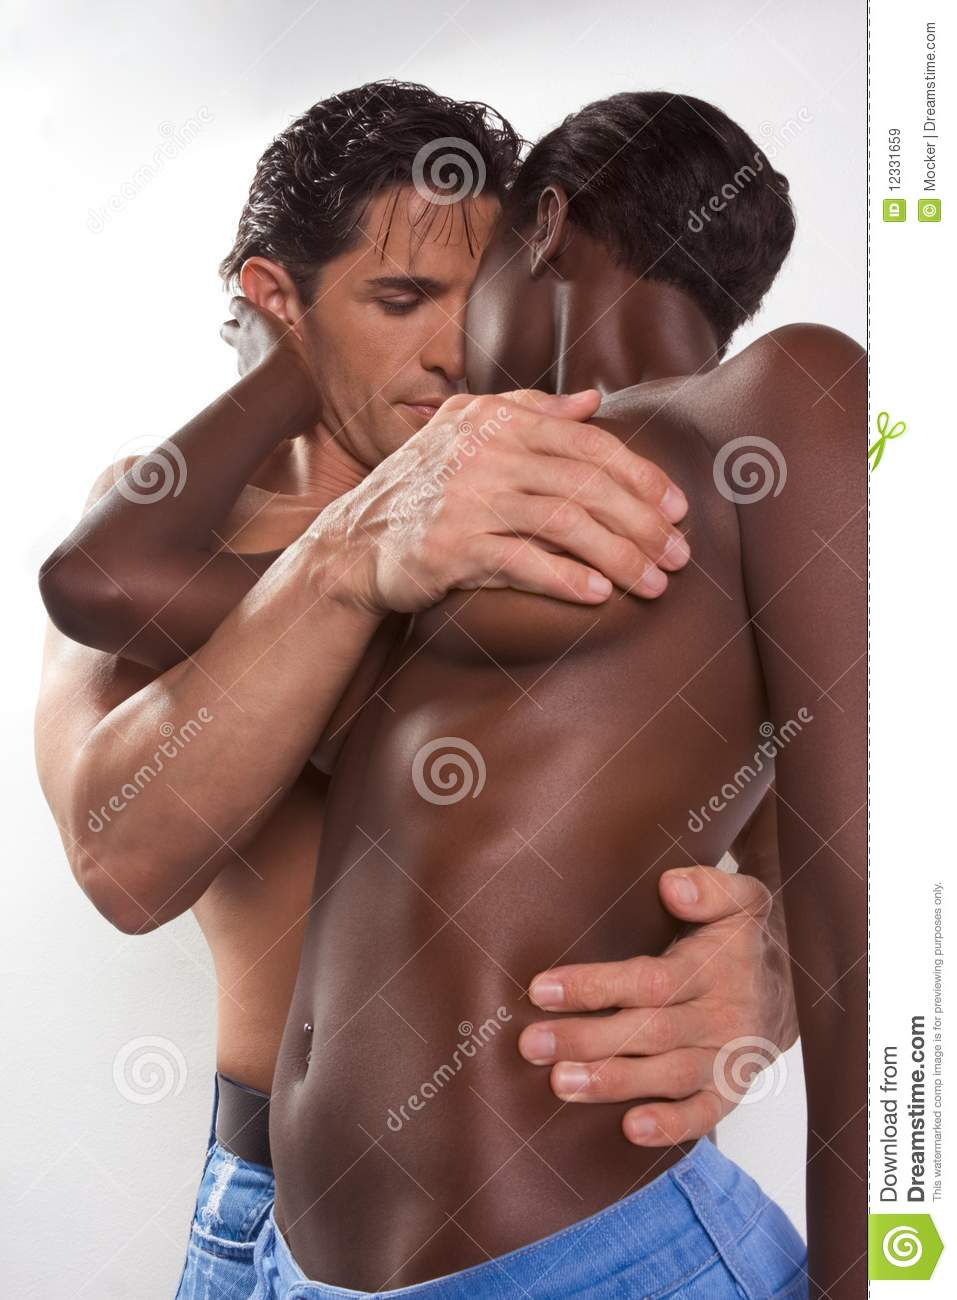 Couple sex woman black african american